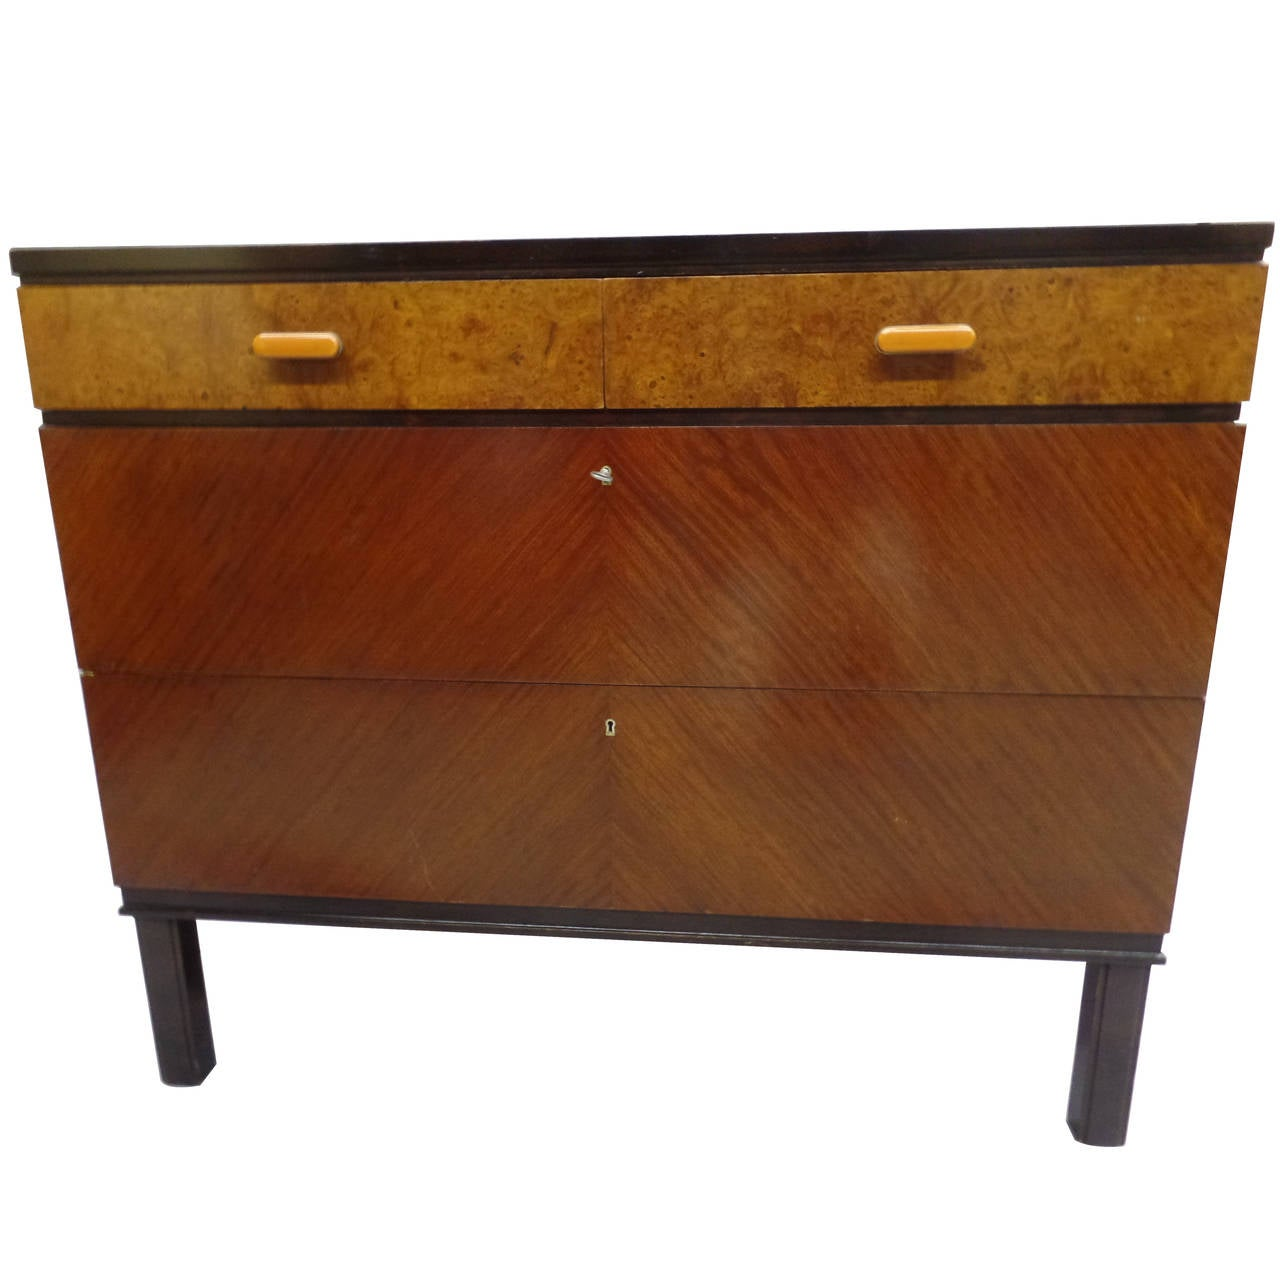 Swedish Mid-Century Modern Chest of Drawers / Commode by Axel Einar Hjort, 1930 2